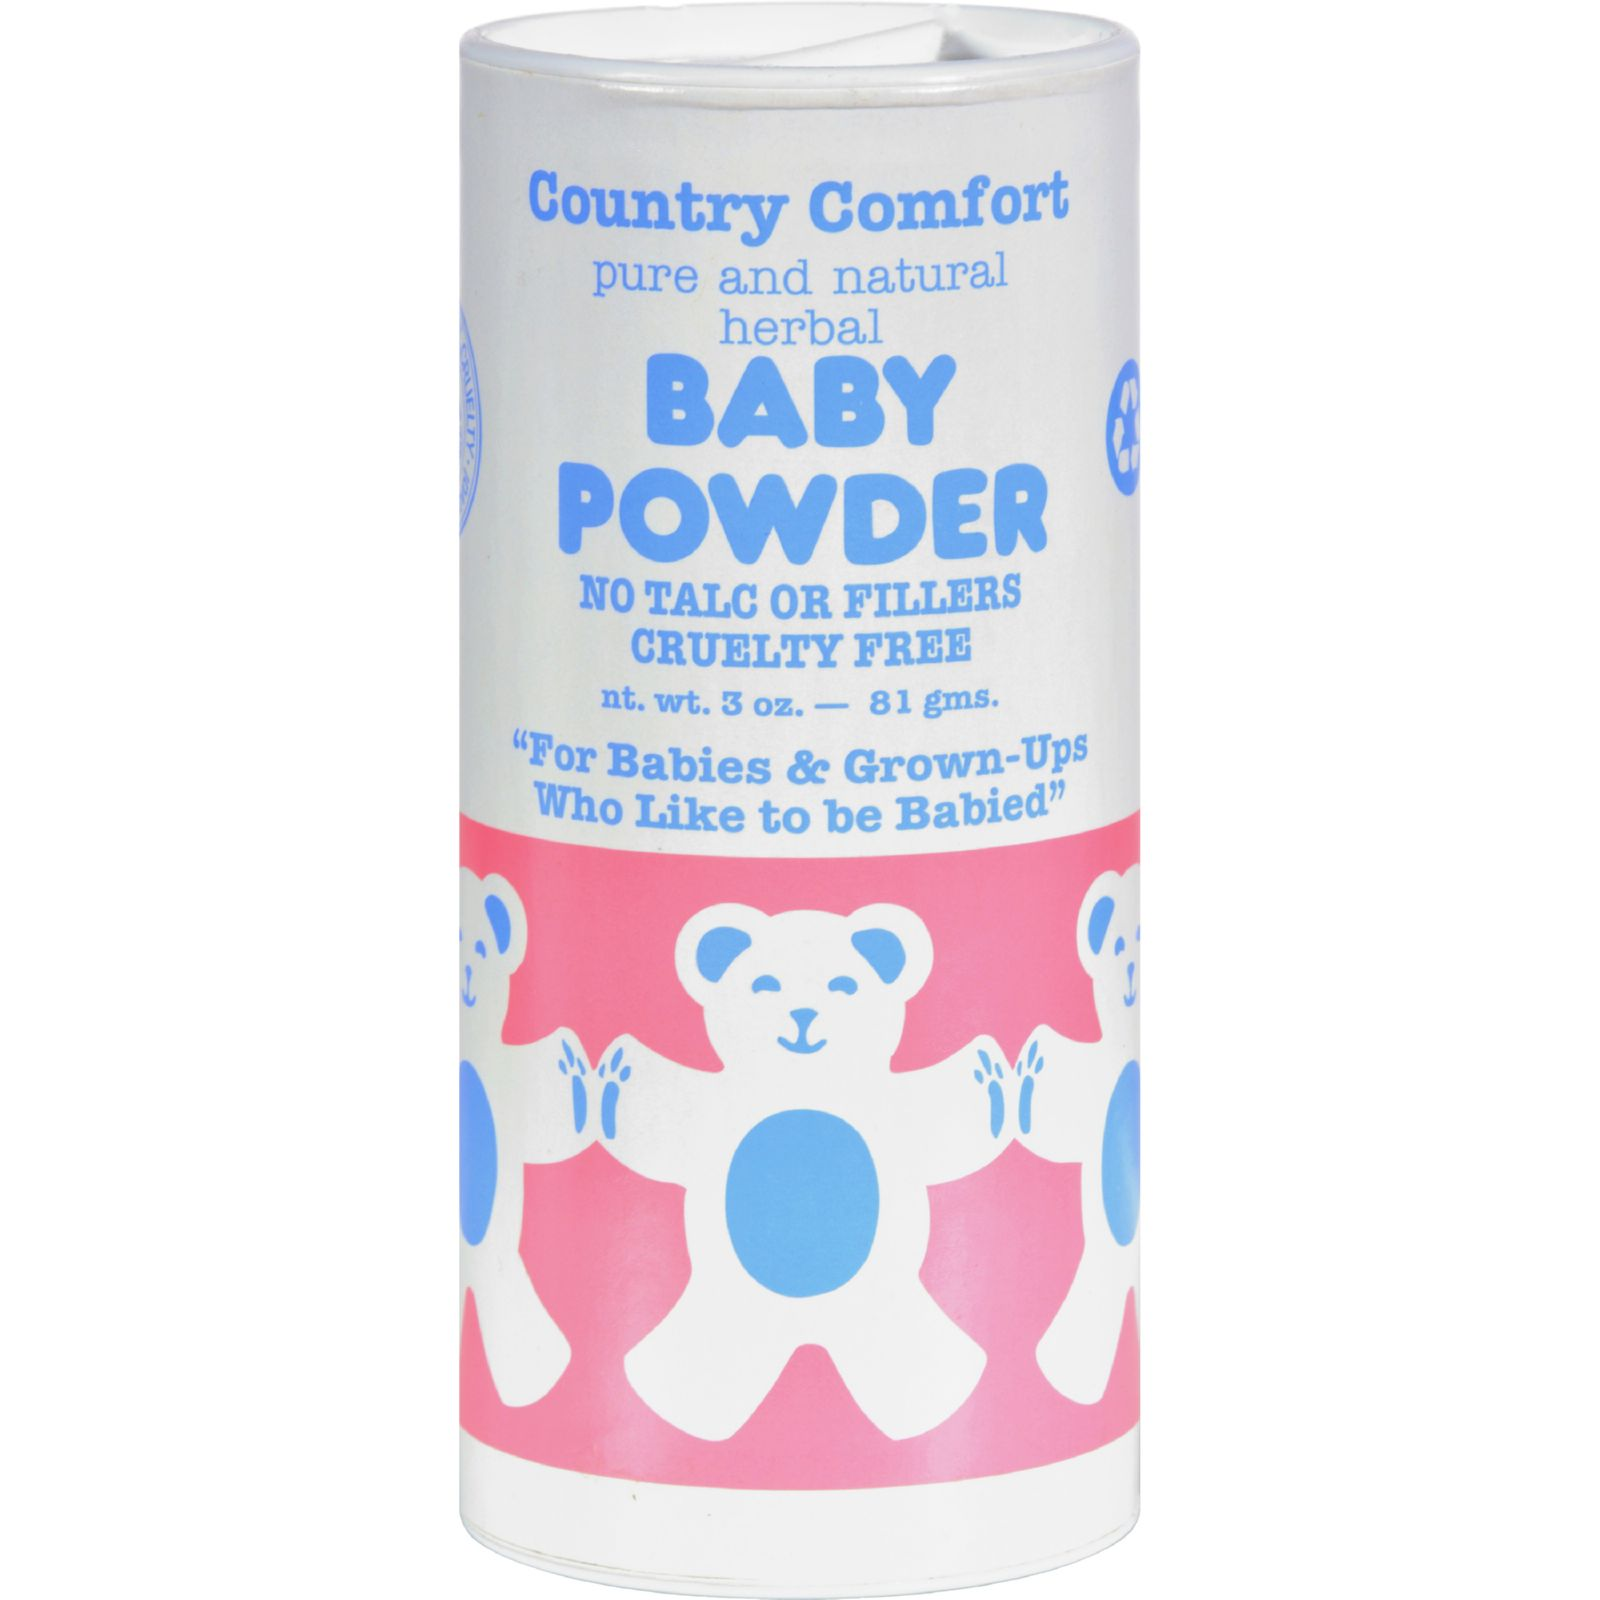 Country Comfort Baby Powder 3 oz by Country Comfort